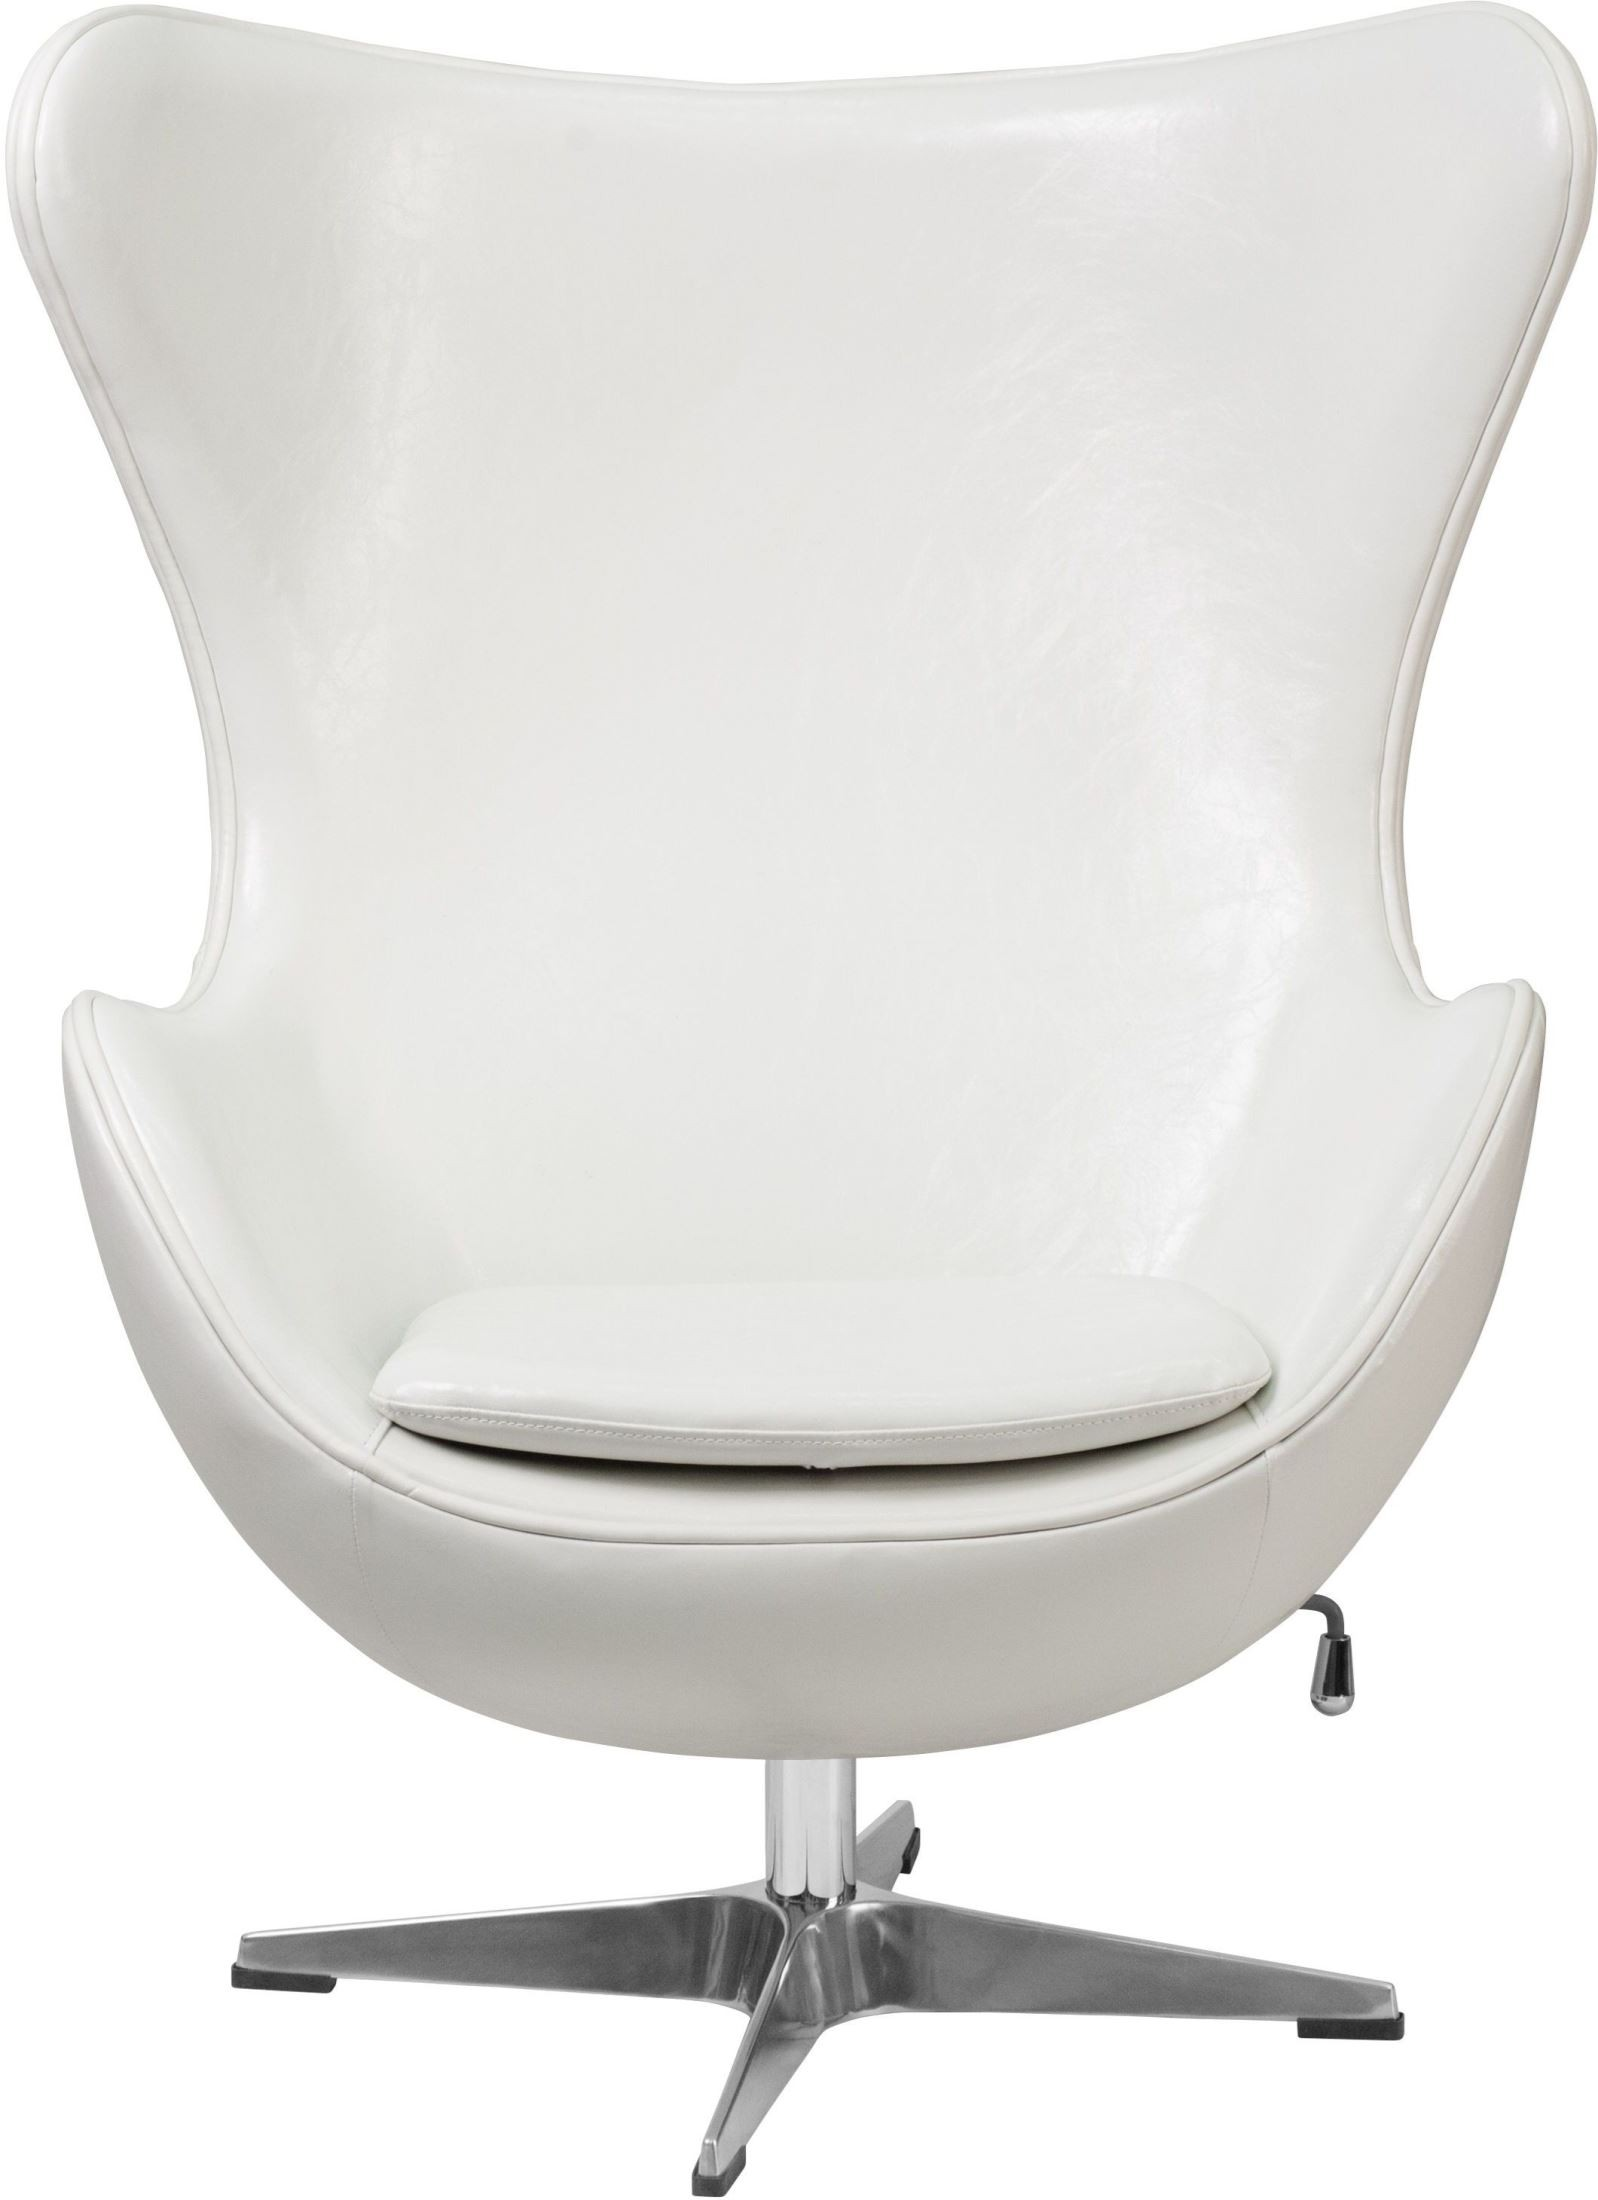 White Leather Egg Chair White Leather Egg Chair With Tilt Lock Mechanism From